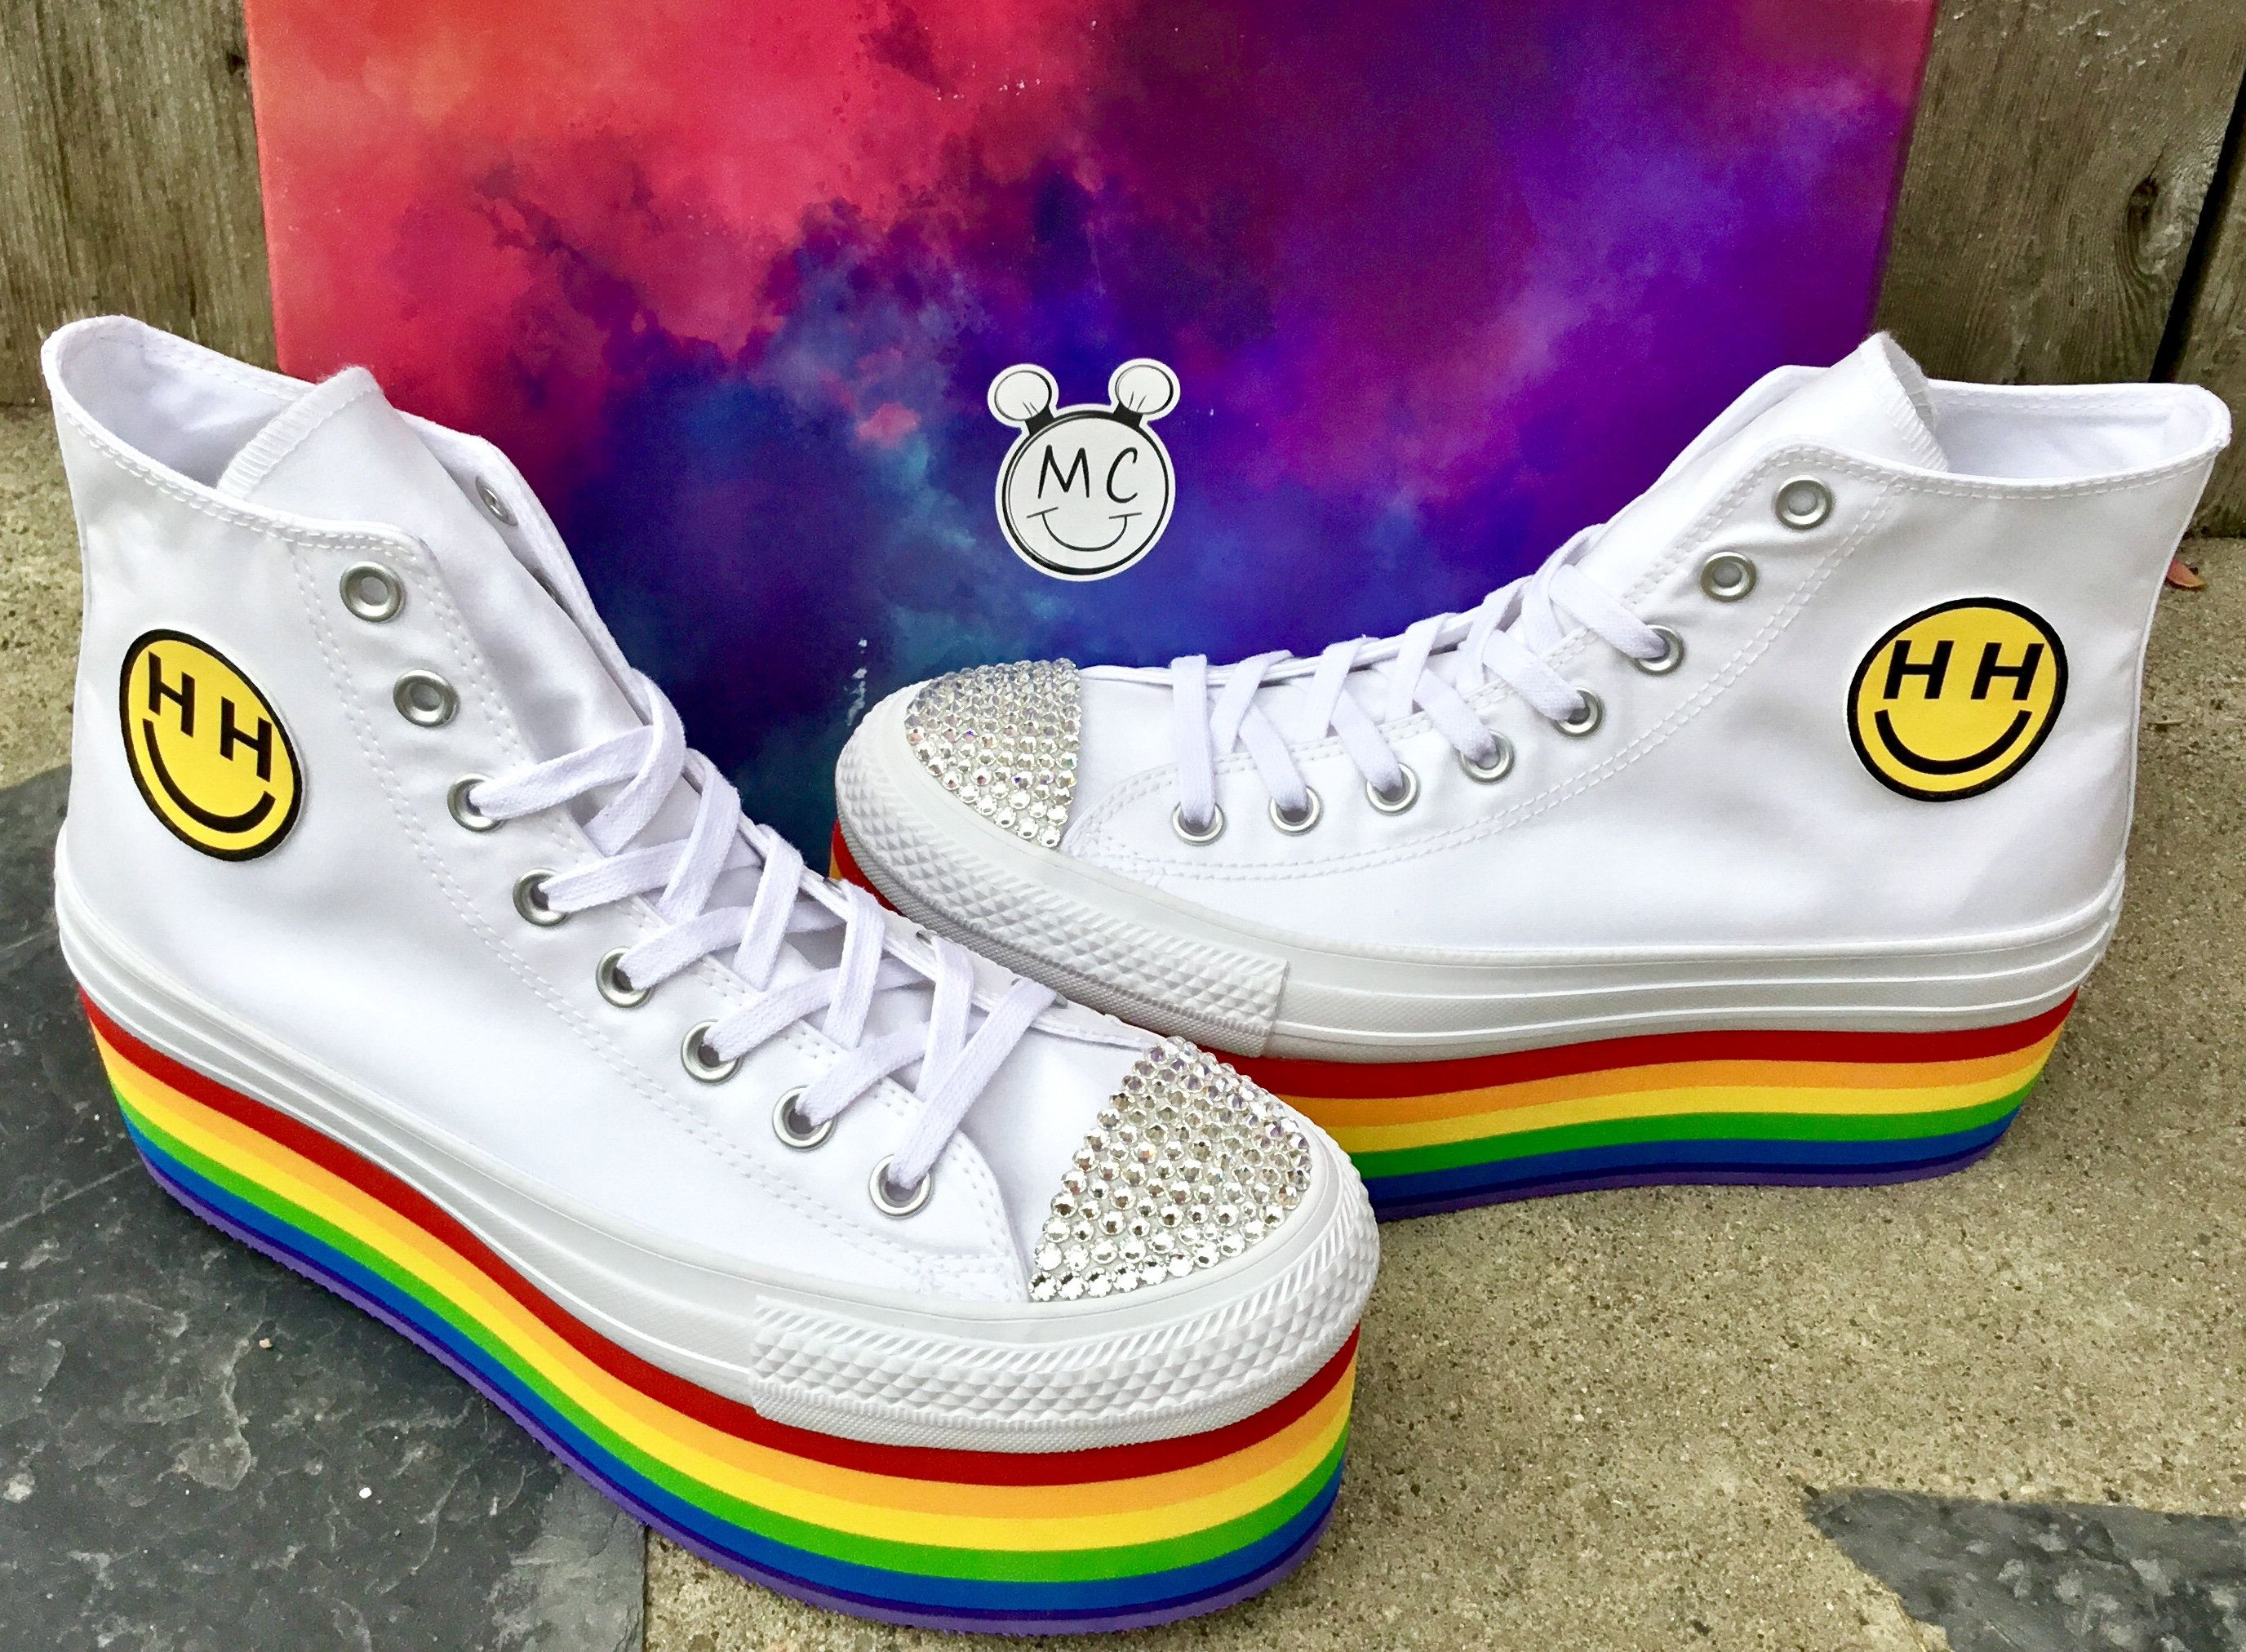 e6b54e0349b Rainbow Converse High Top Lady Pride Platform Glitter 2018 Miley Cyrus  Custom LGTBQ w  Swarovski Crystal Chuck Taylor All Star Sneakers Shoe by ...